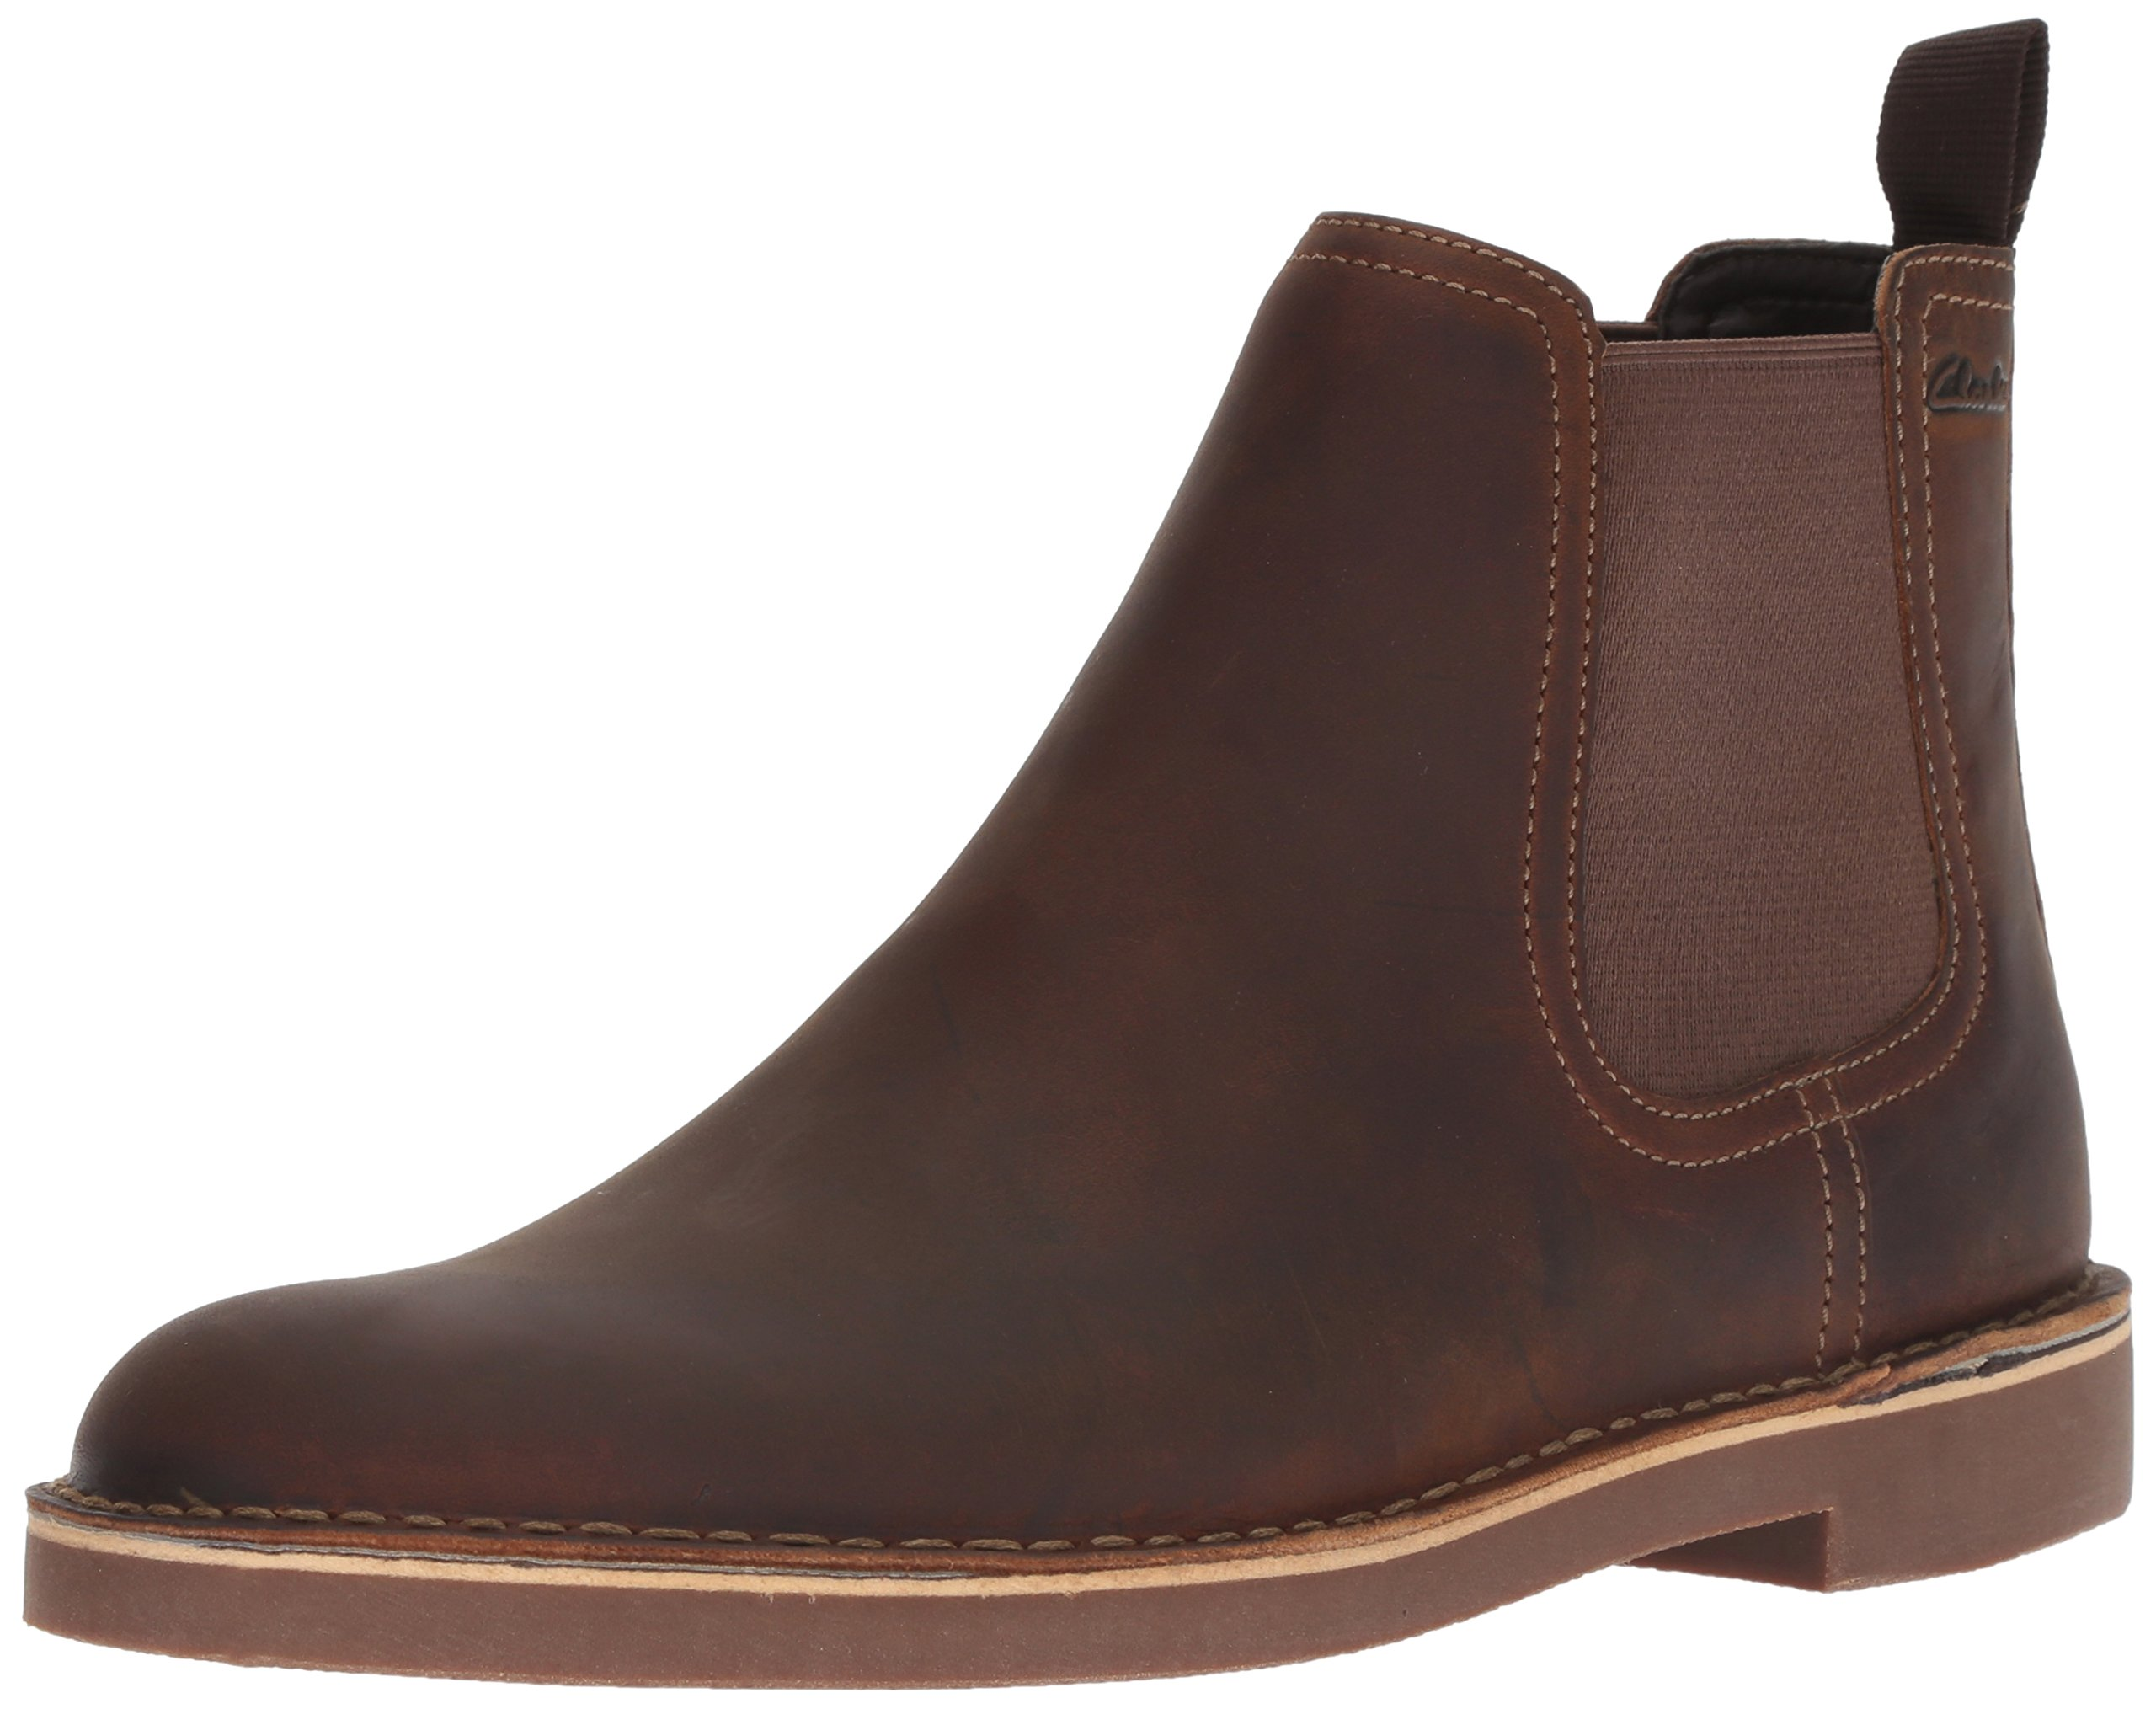 CLARKS Men's Bushacre Hill Chelsea Boot, Beeswax Leather, 11.5 M US